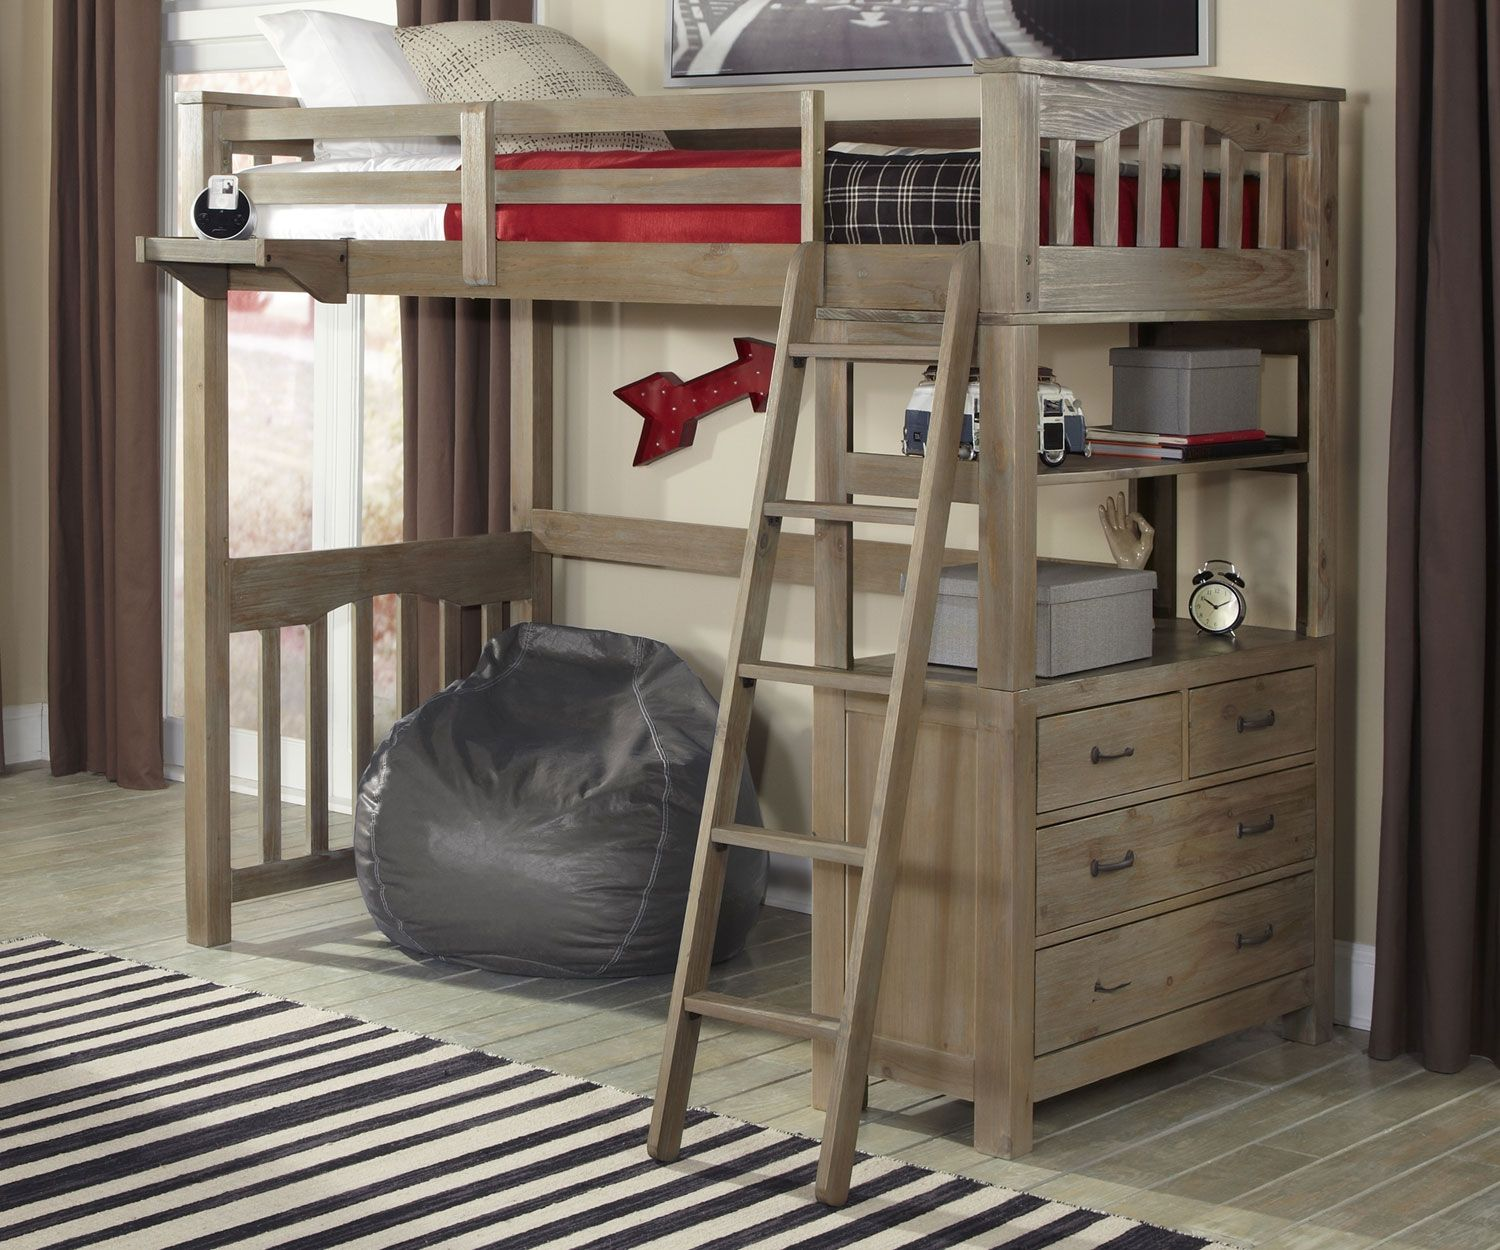 Loft bed with desk full size  Loft Bed with Desk Full Size  City Furniture Living Room Set Check